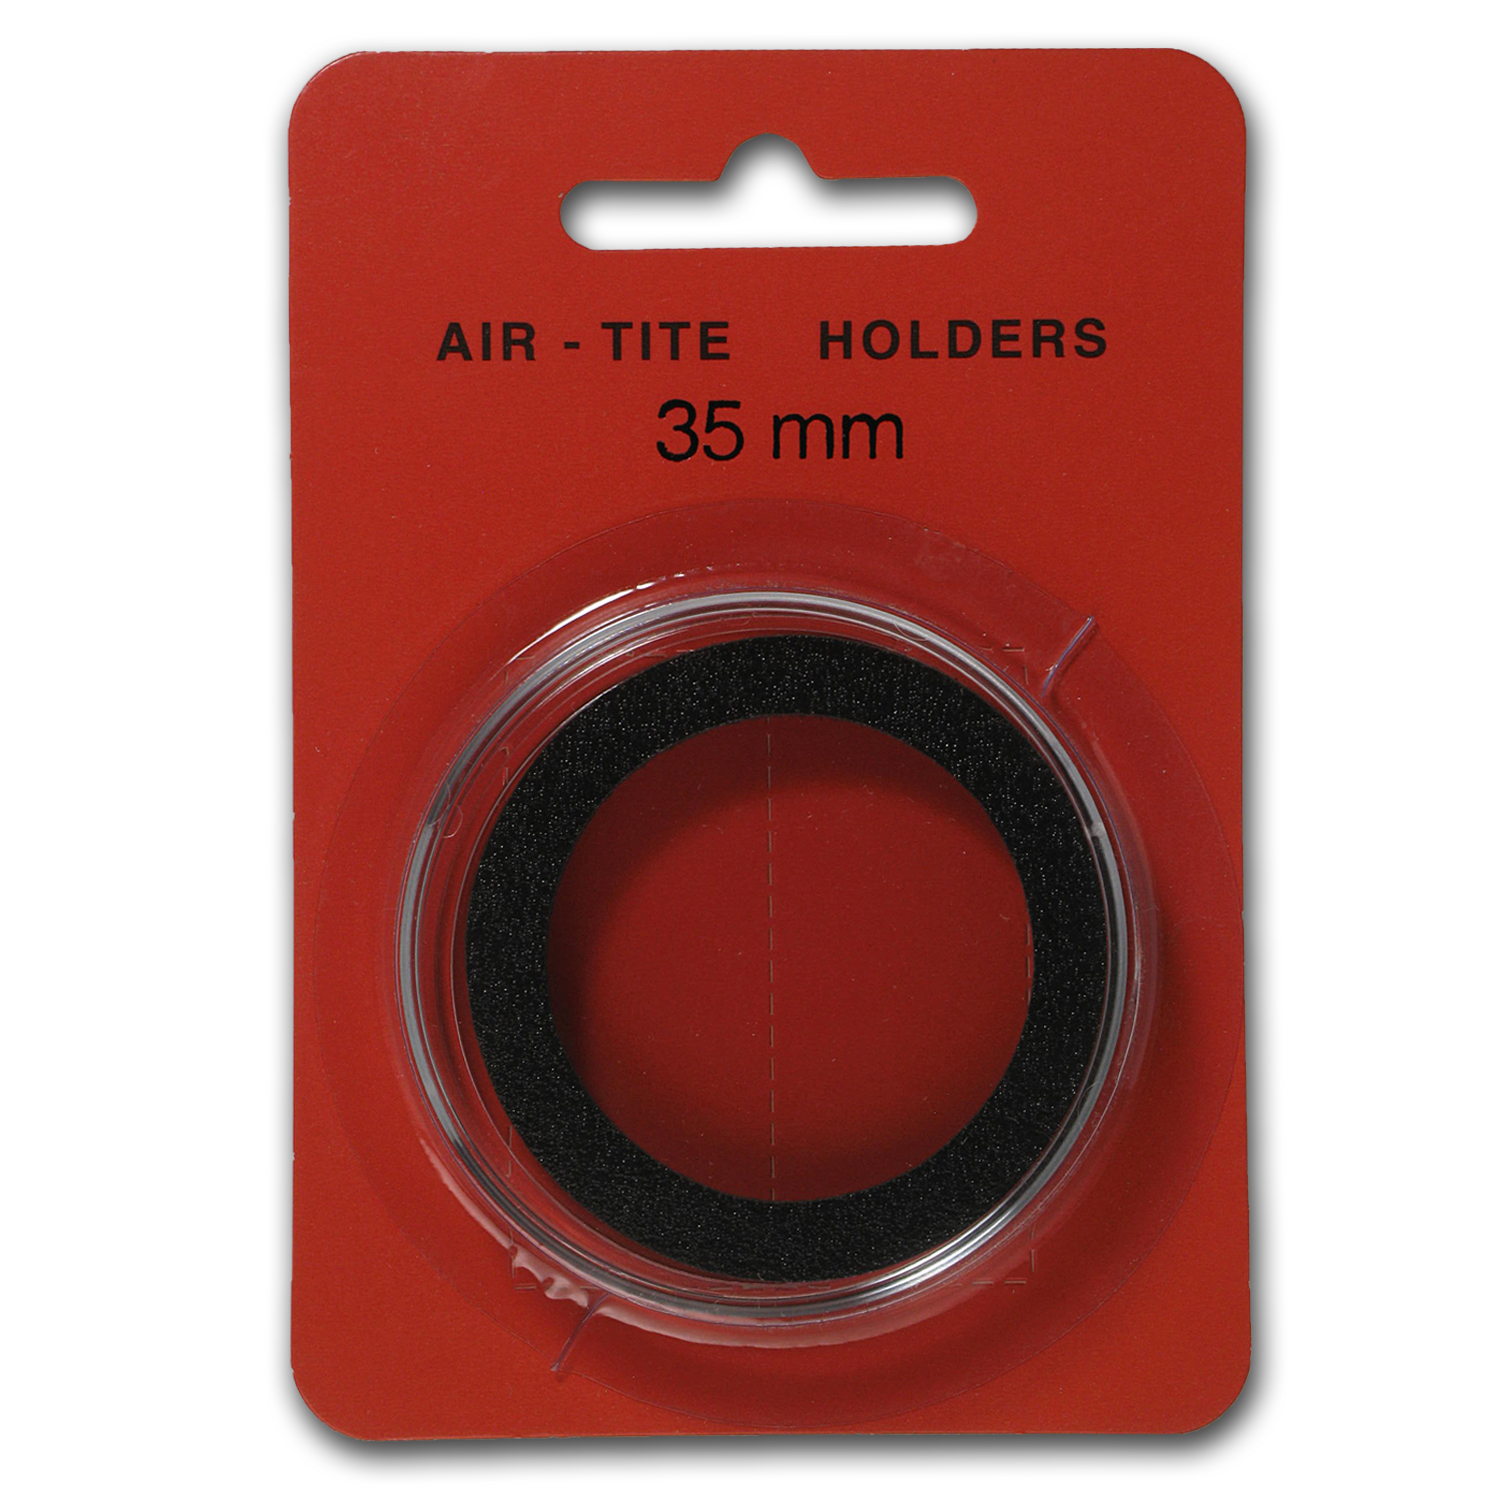 Air-Tite Holder w/ Black Gasket - 35 mm